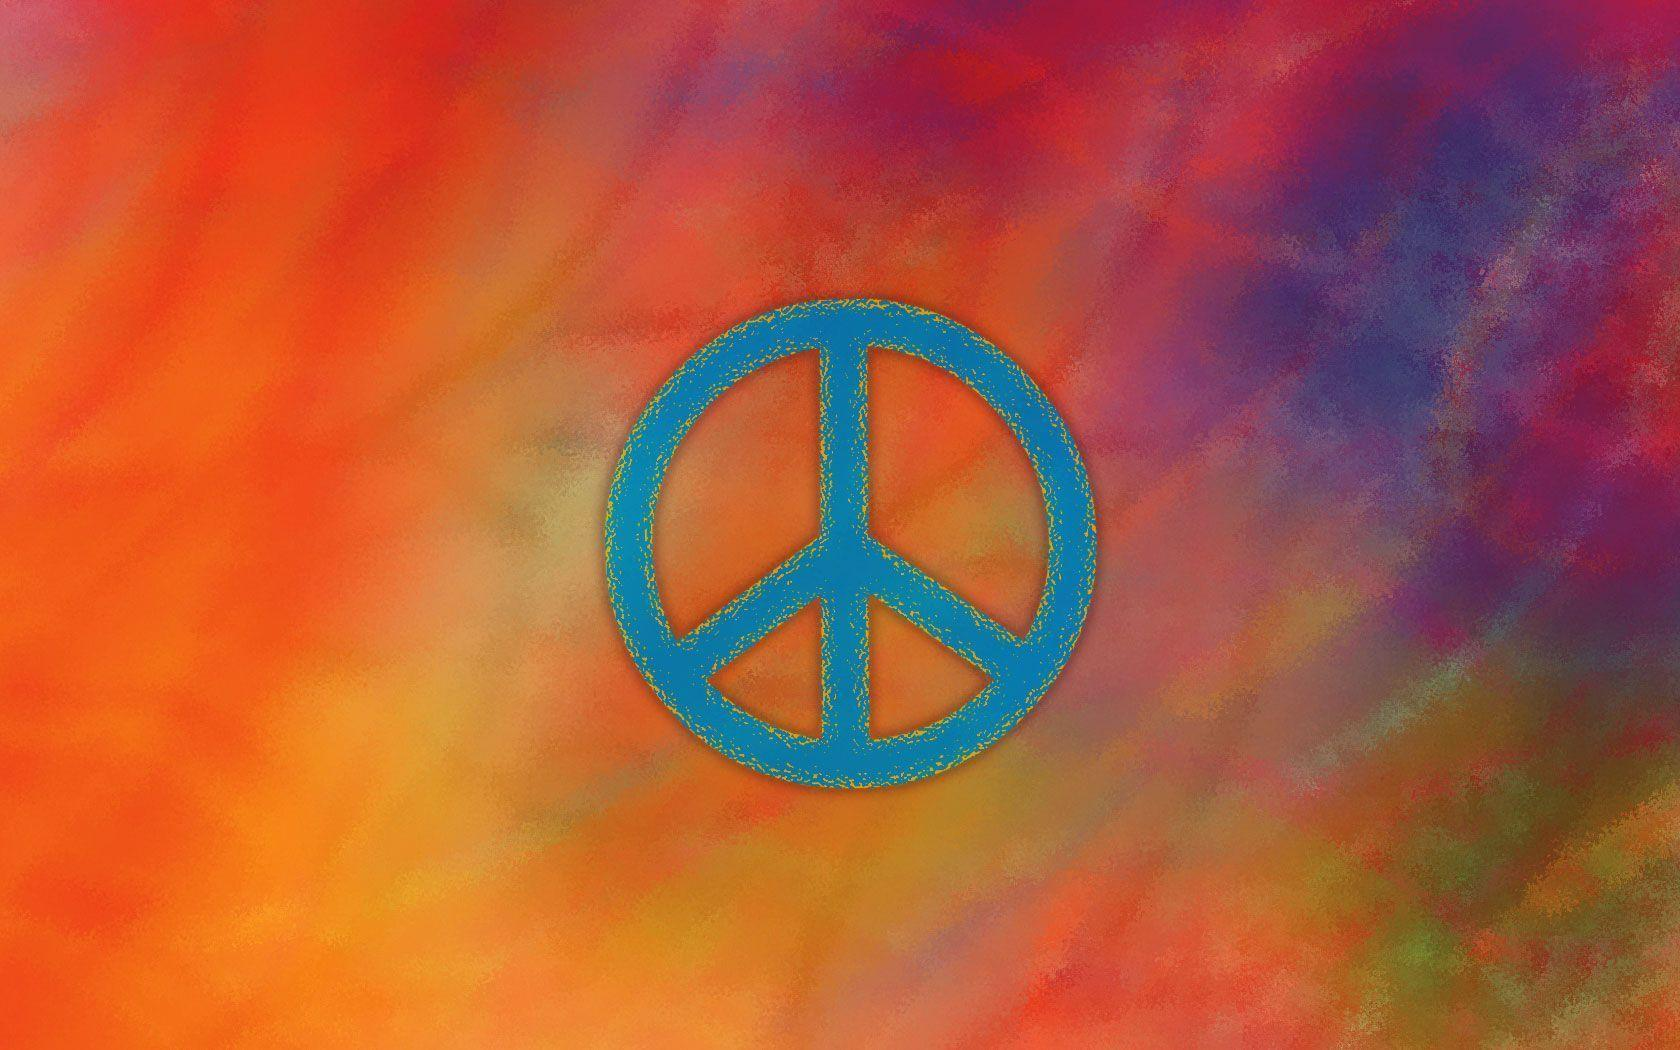 Peace And Love Iphone Wallpaper : World Peace Wallpapers - Wallpaper cave